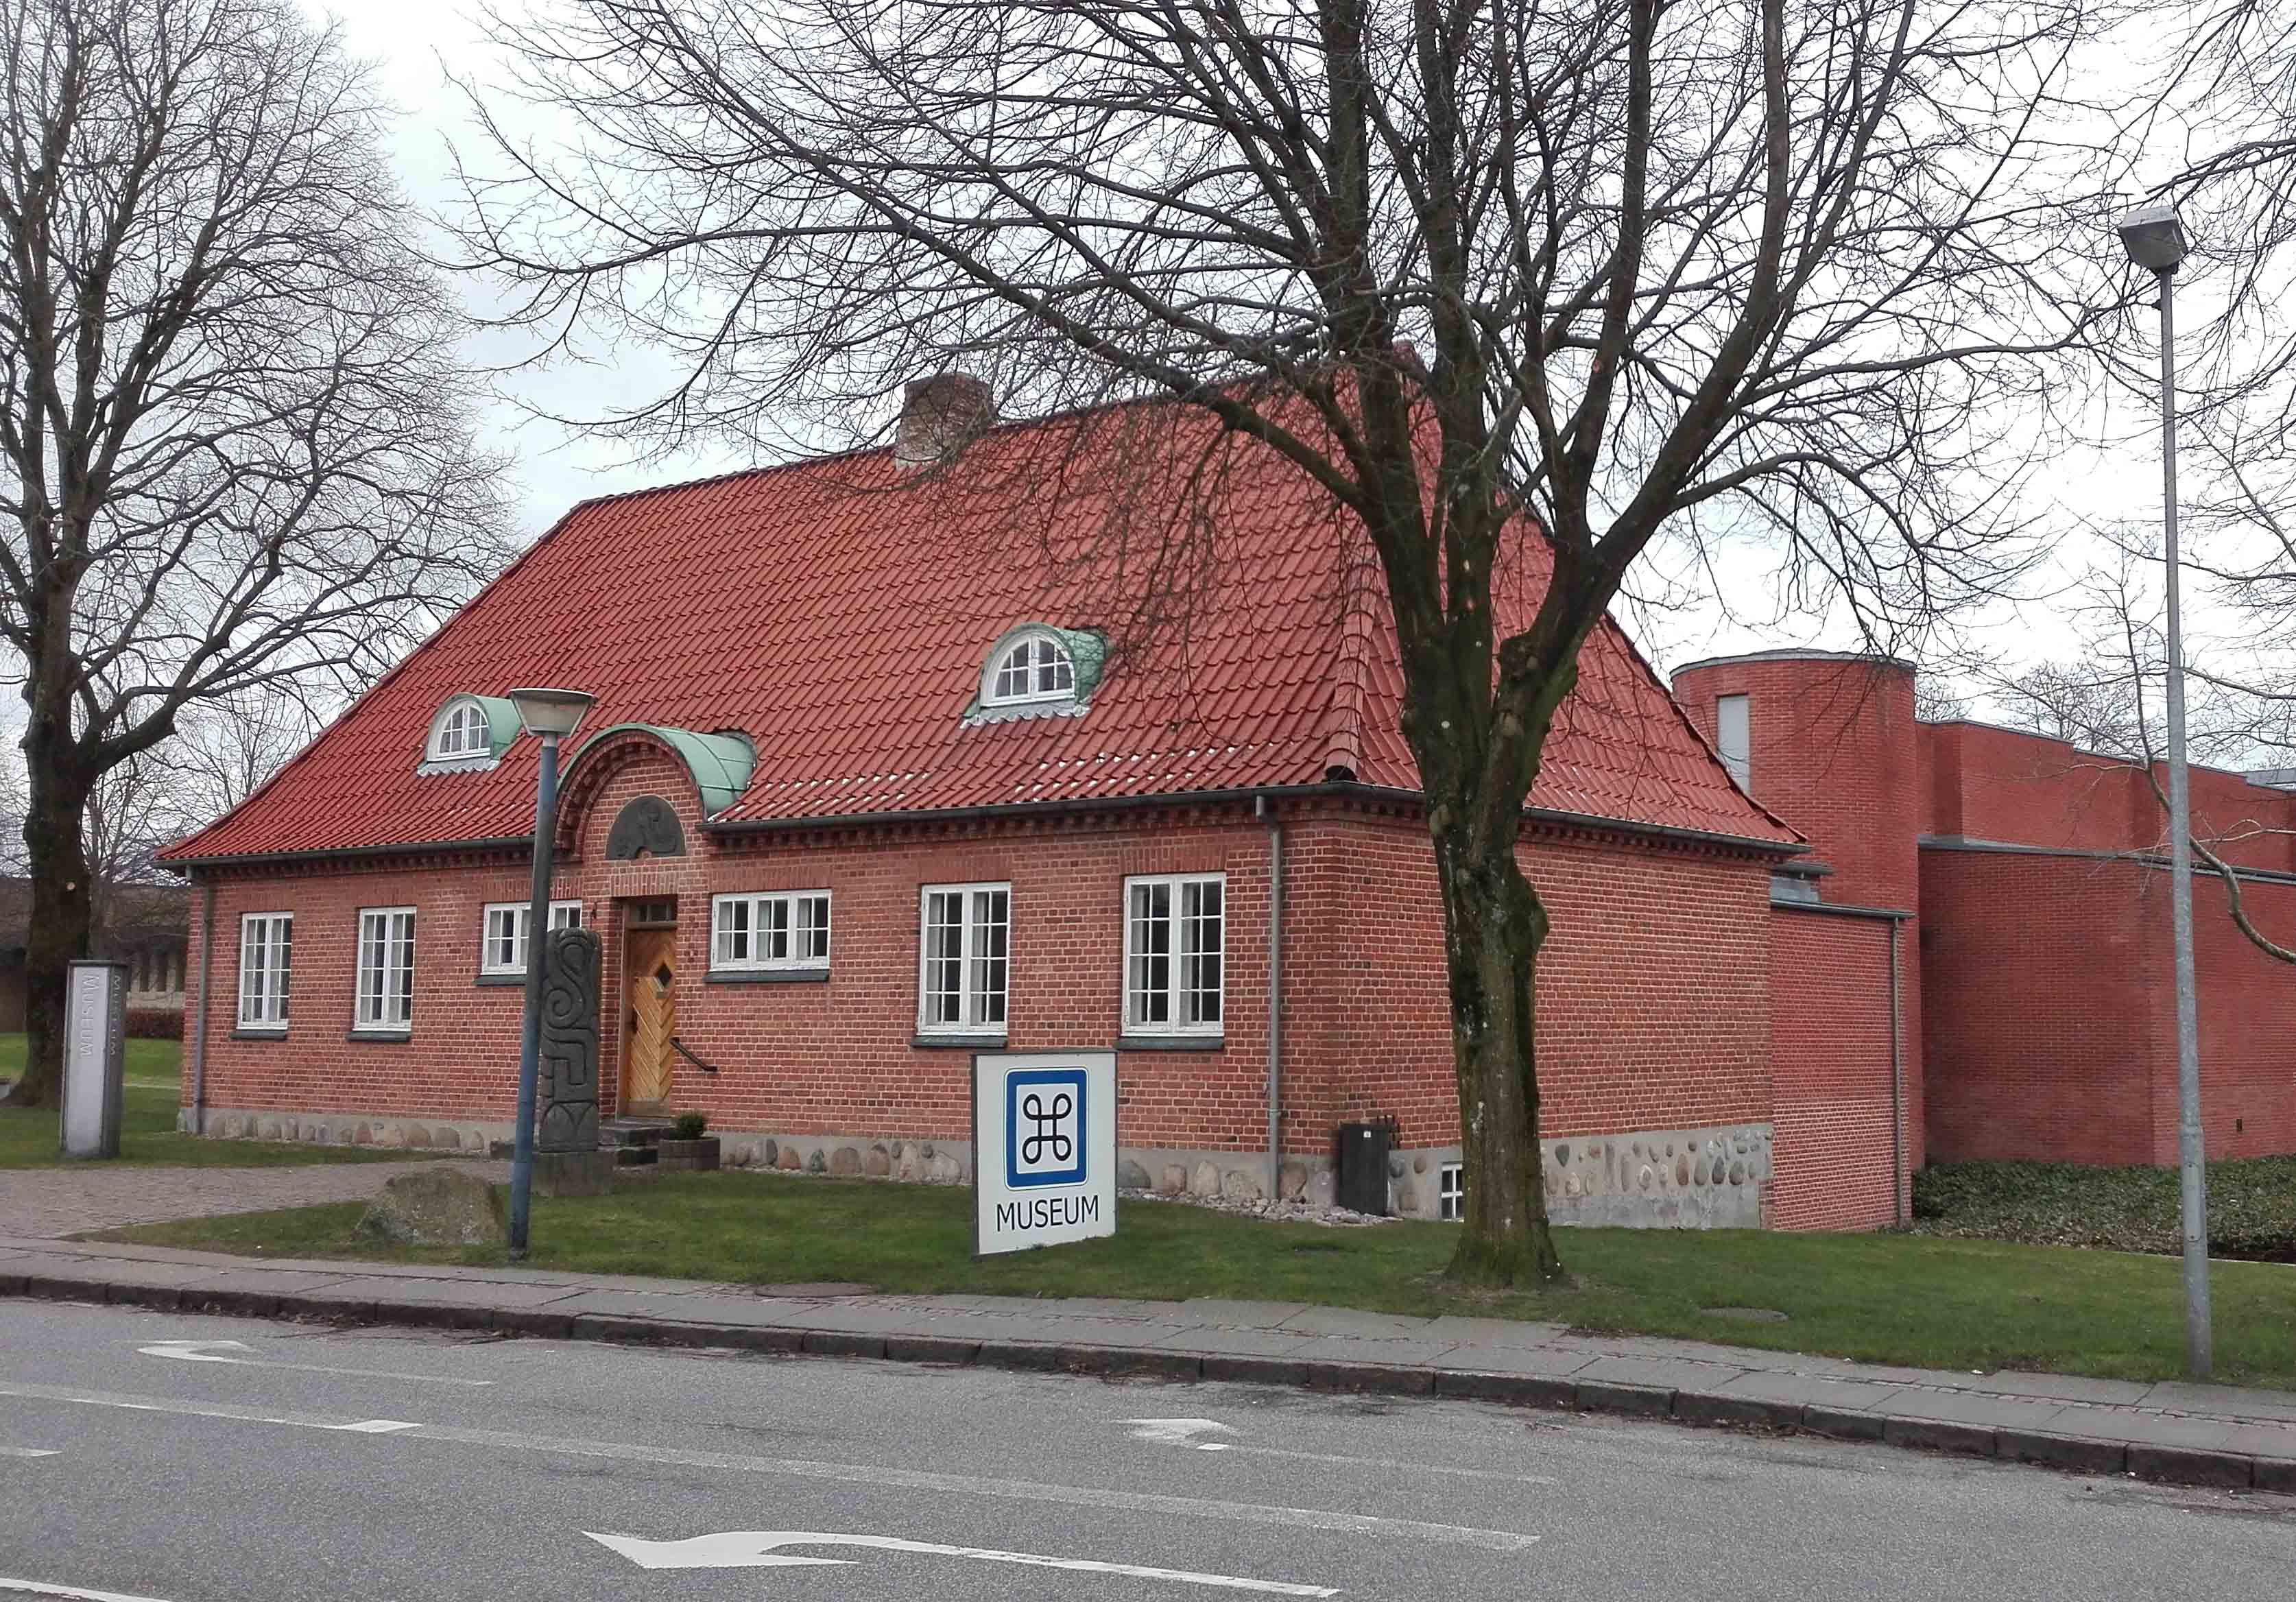 Vesthimmerlands Museum in Års, Denmark. Photo taken on March 7, 2017.